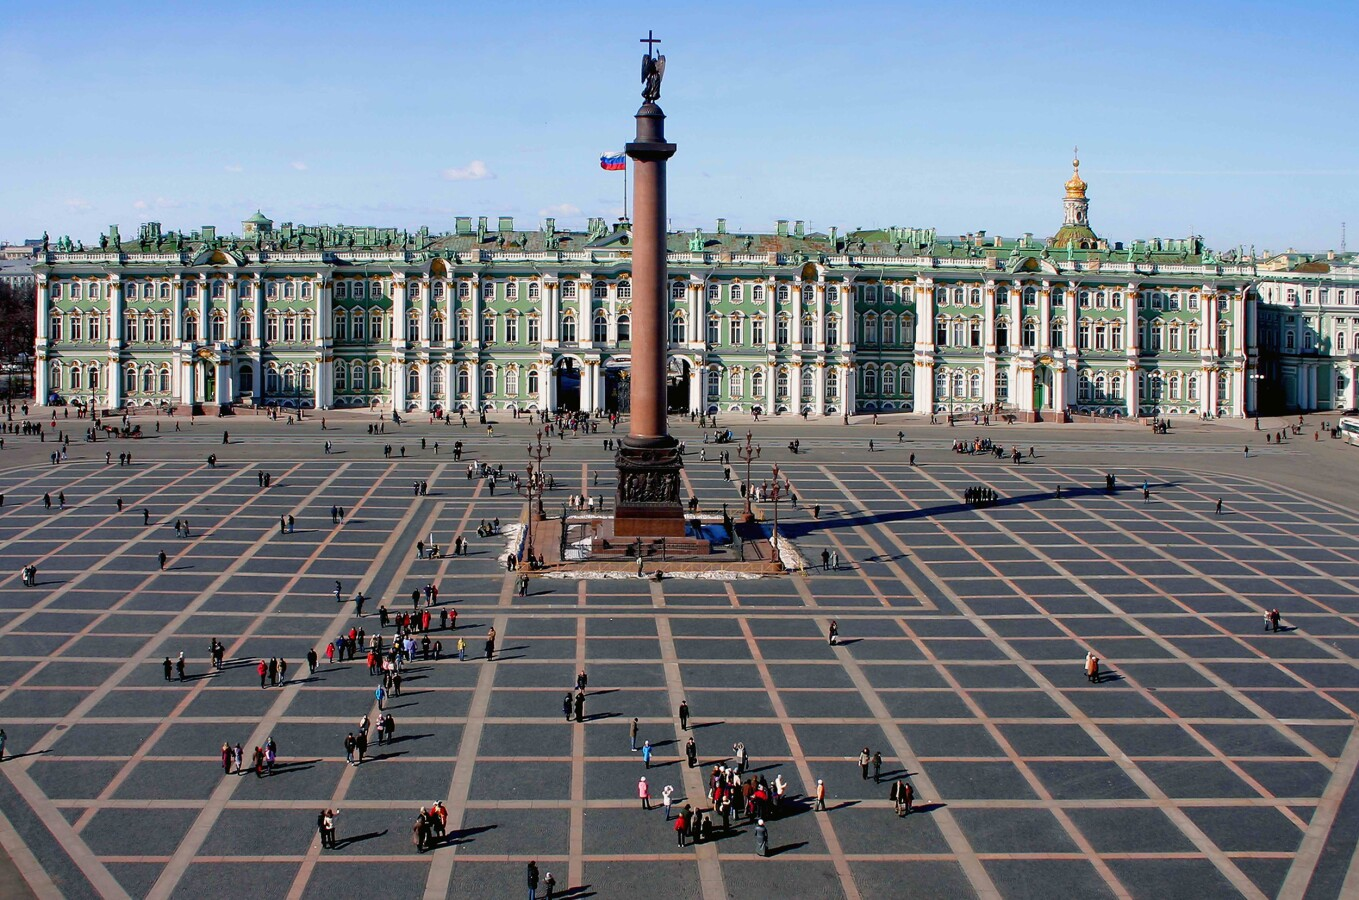 Dvortsovaya Square, with the Alexander Column Monument in front of the Winter Palace